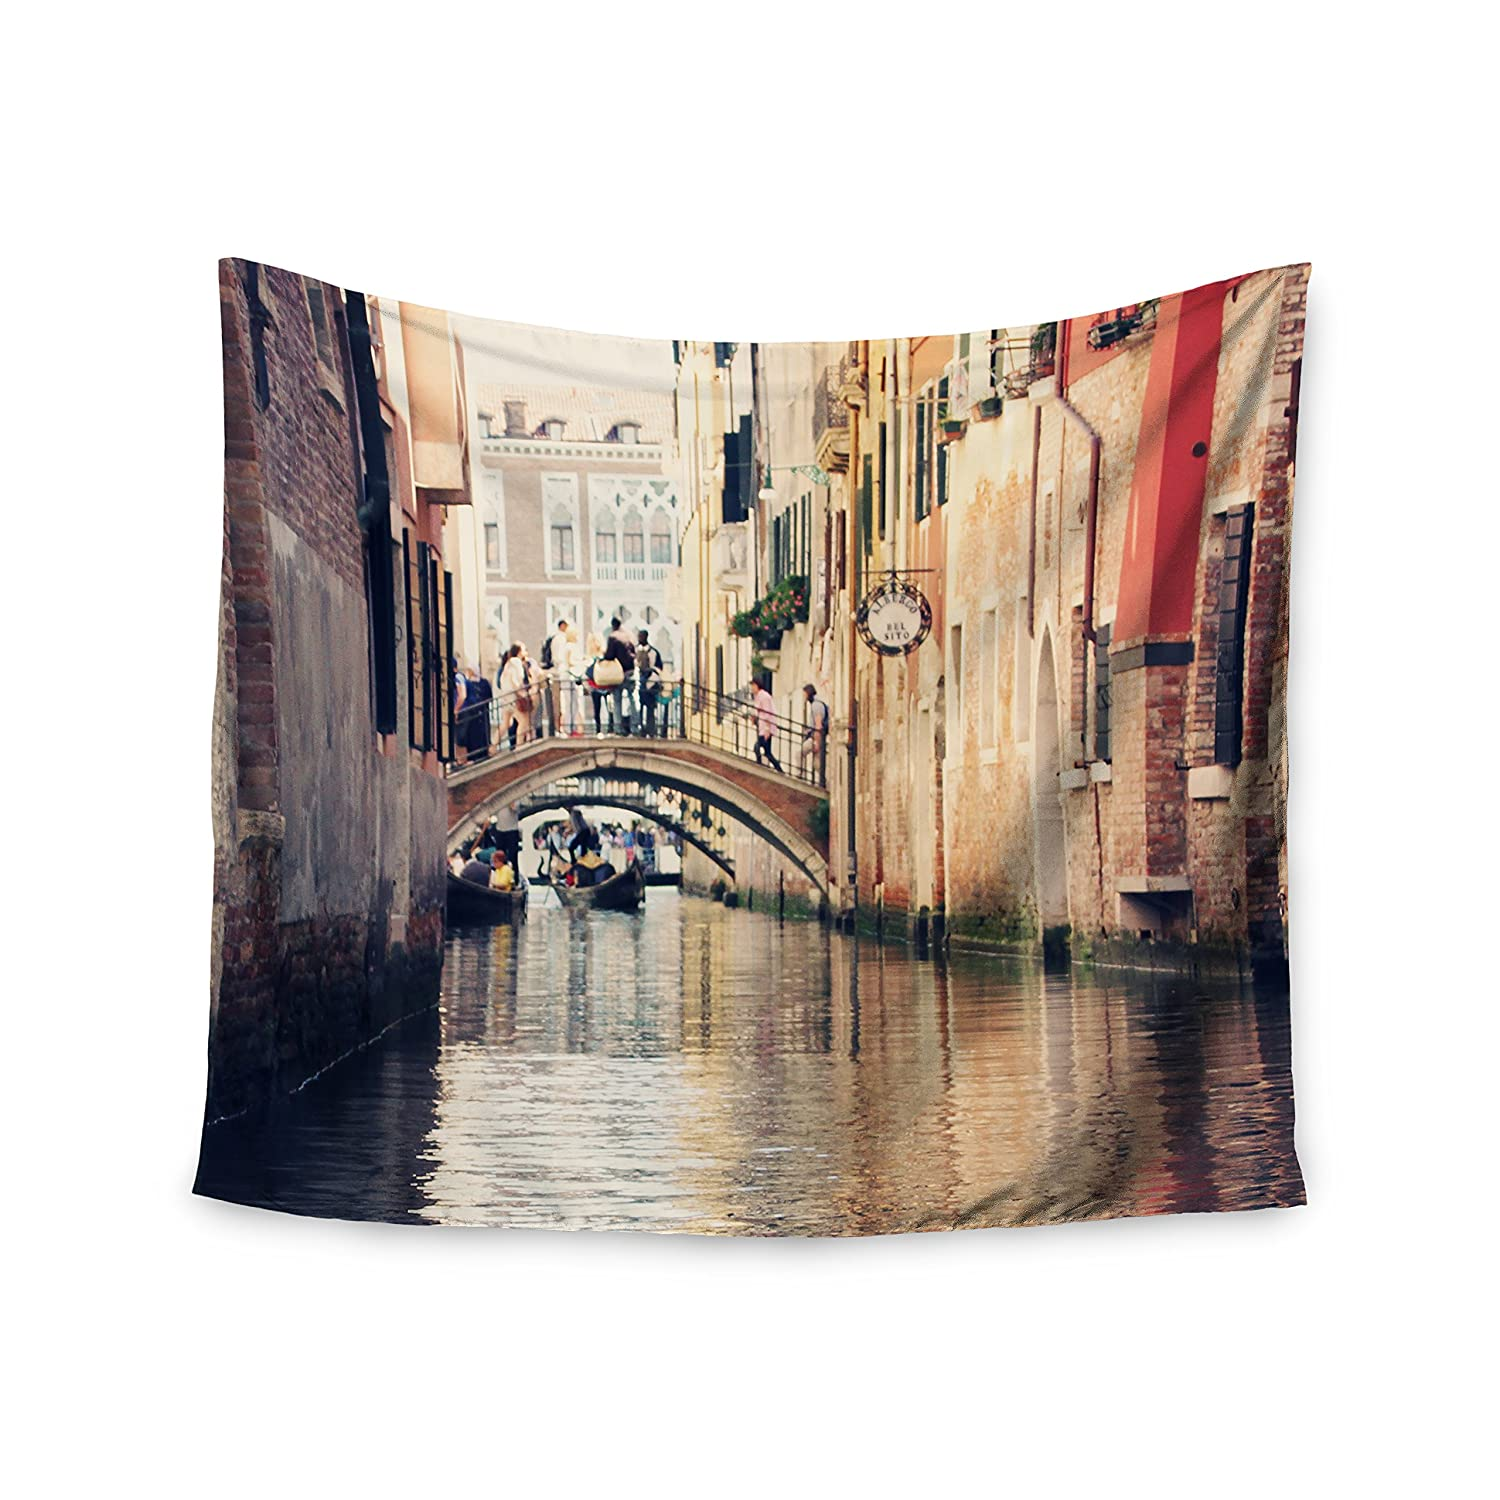 51 x 60 Kess InHouse Sylvia Coomes Venice 10 Beige Brown Wall Tapestry